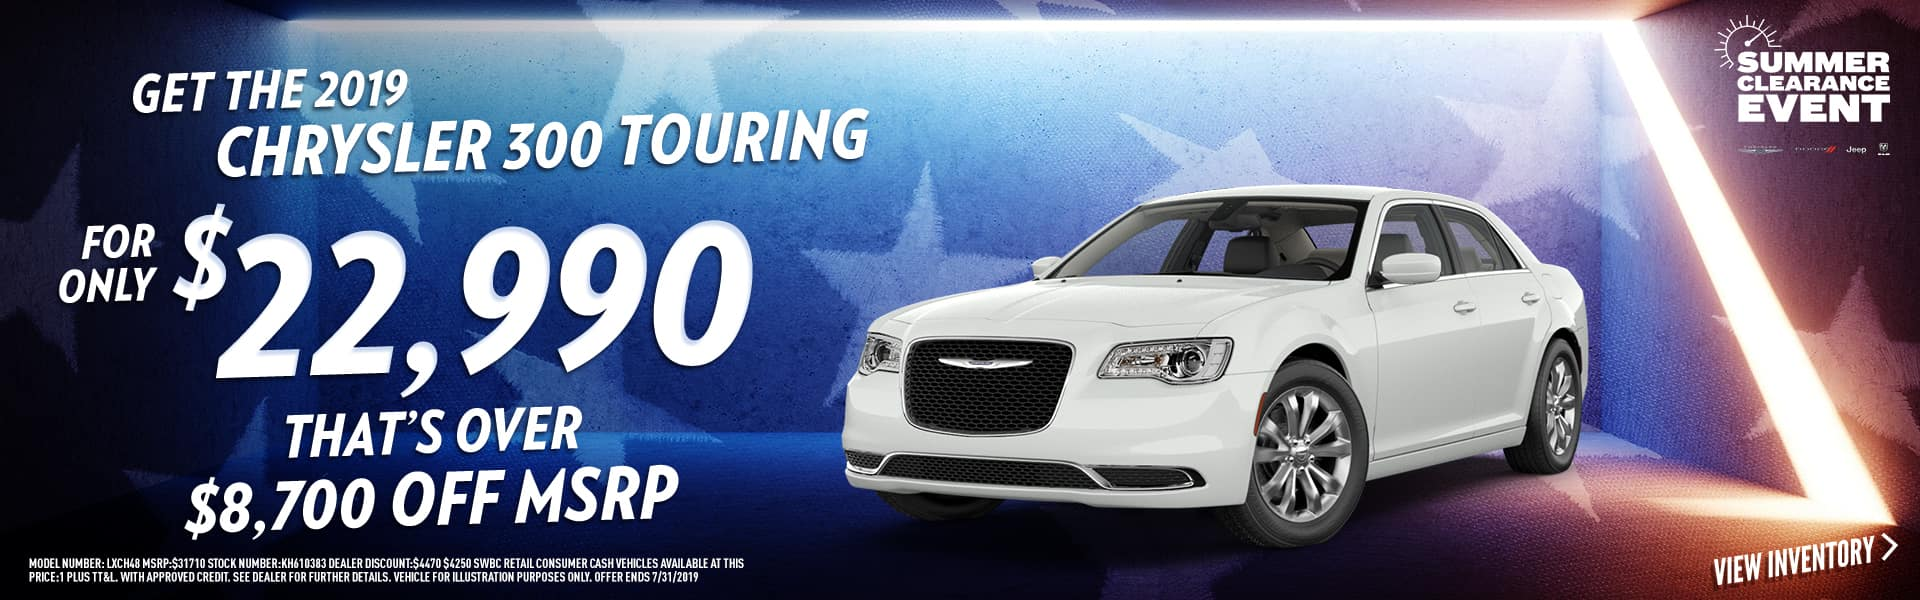 lease-2019-chrysler-300-touring-beaumont